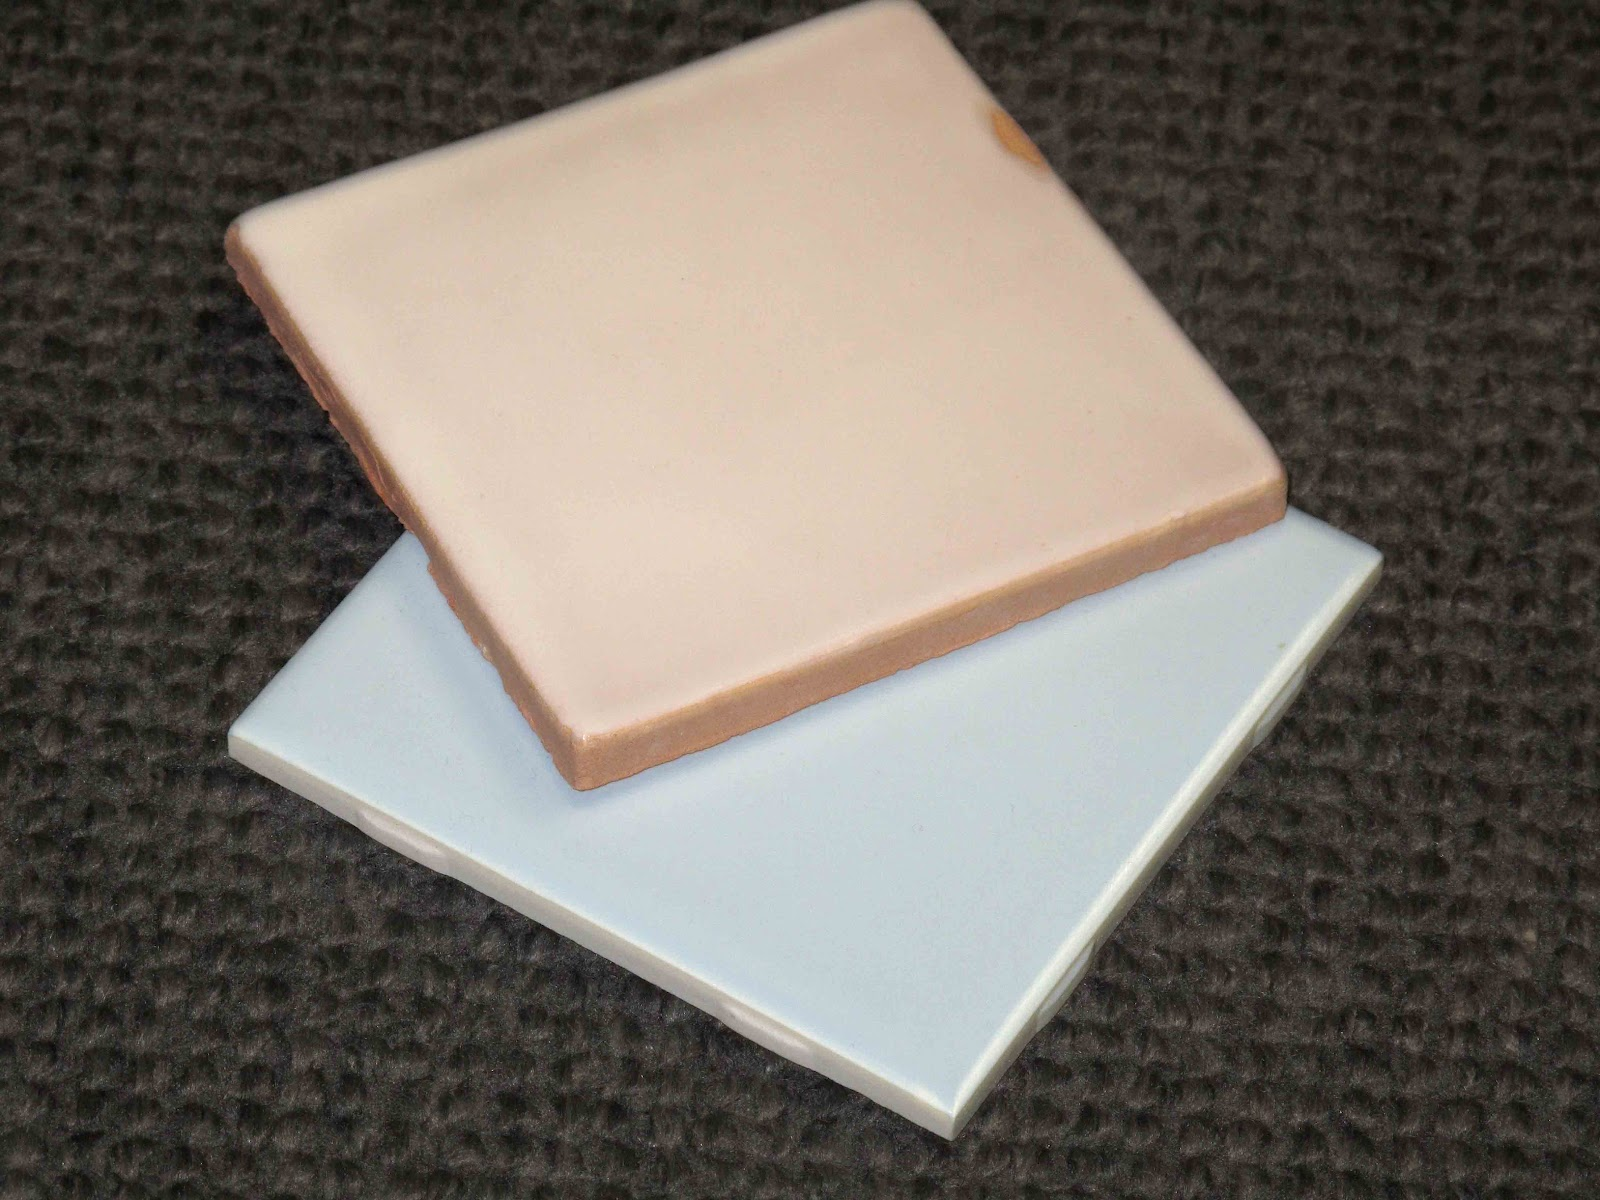 Garage sale ceramic tile perefect for artists or small for Ceramic tiles for crafts projects